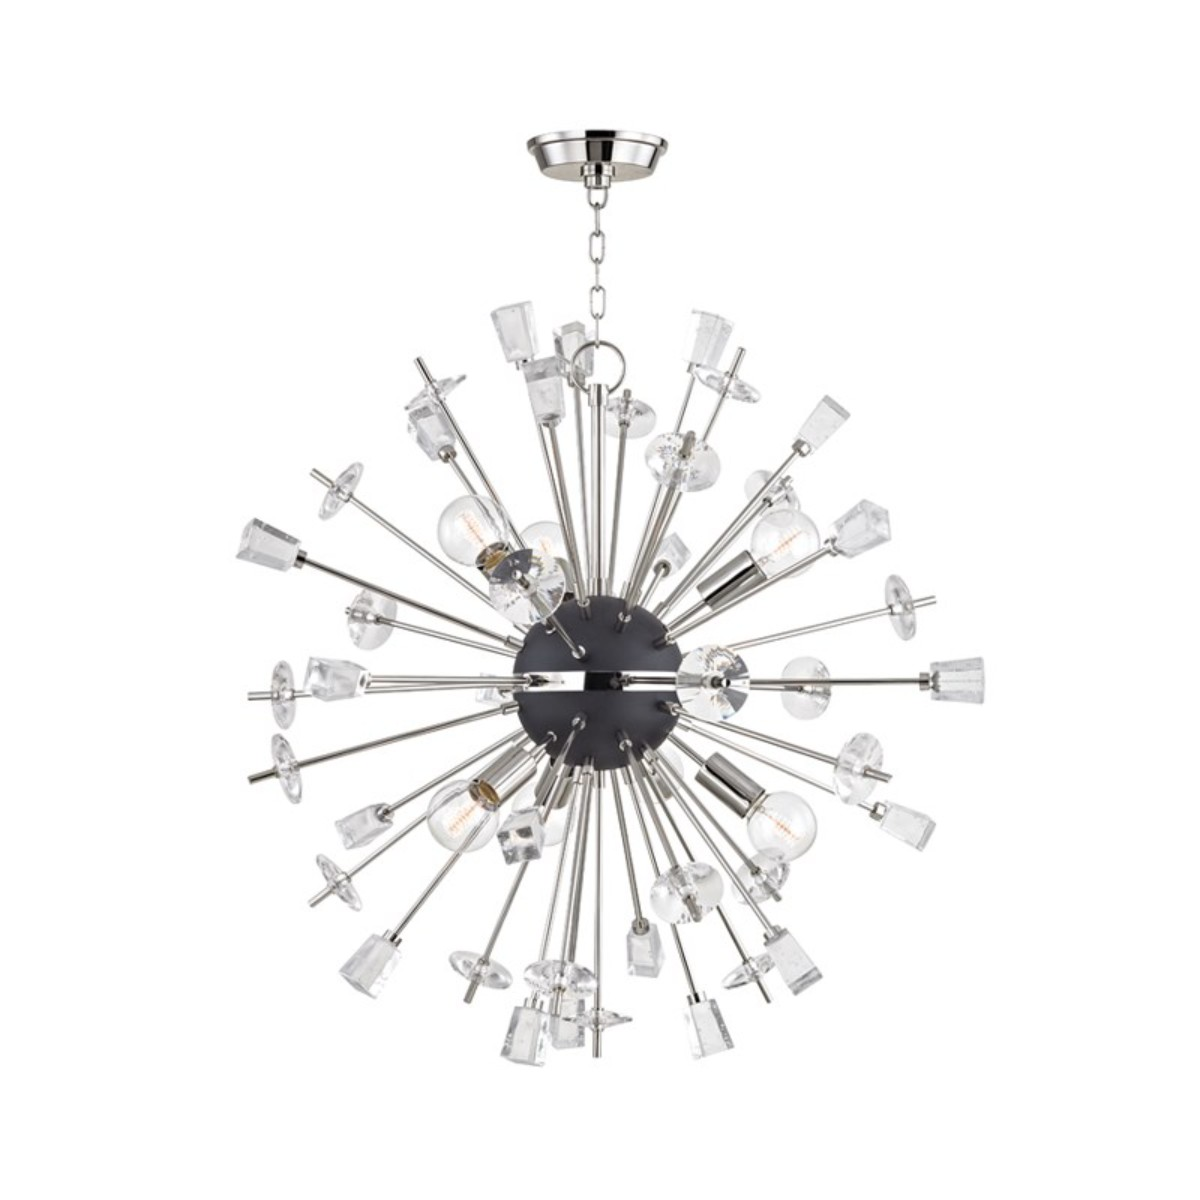 Hudson Valley I Liberty Chandelier I Small